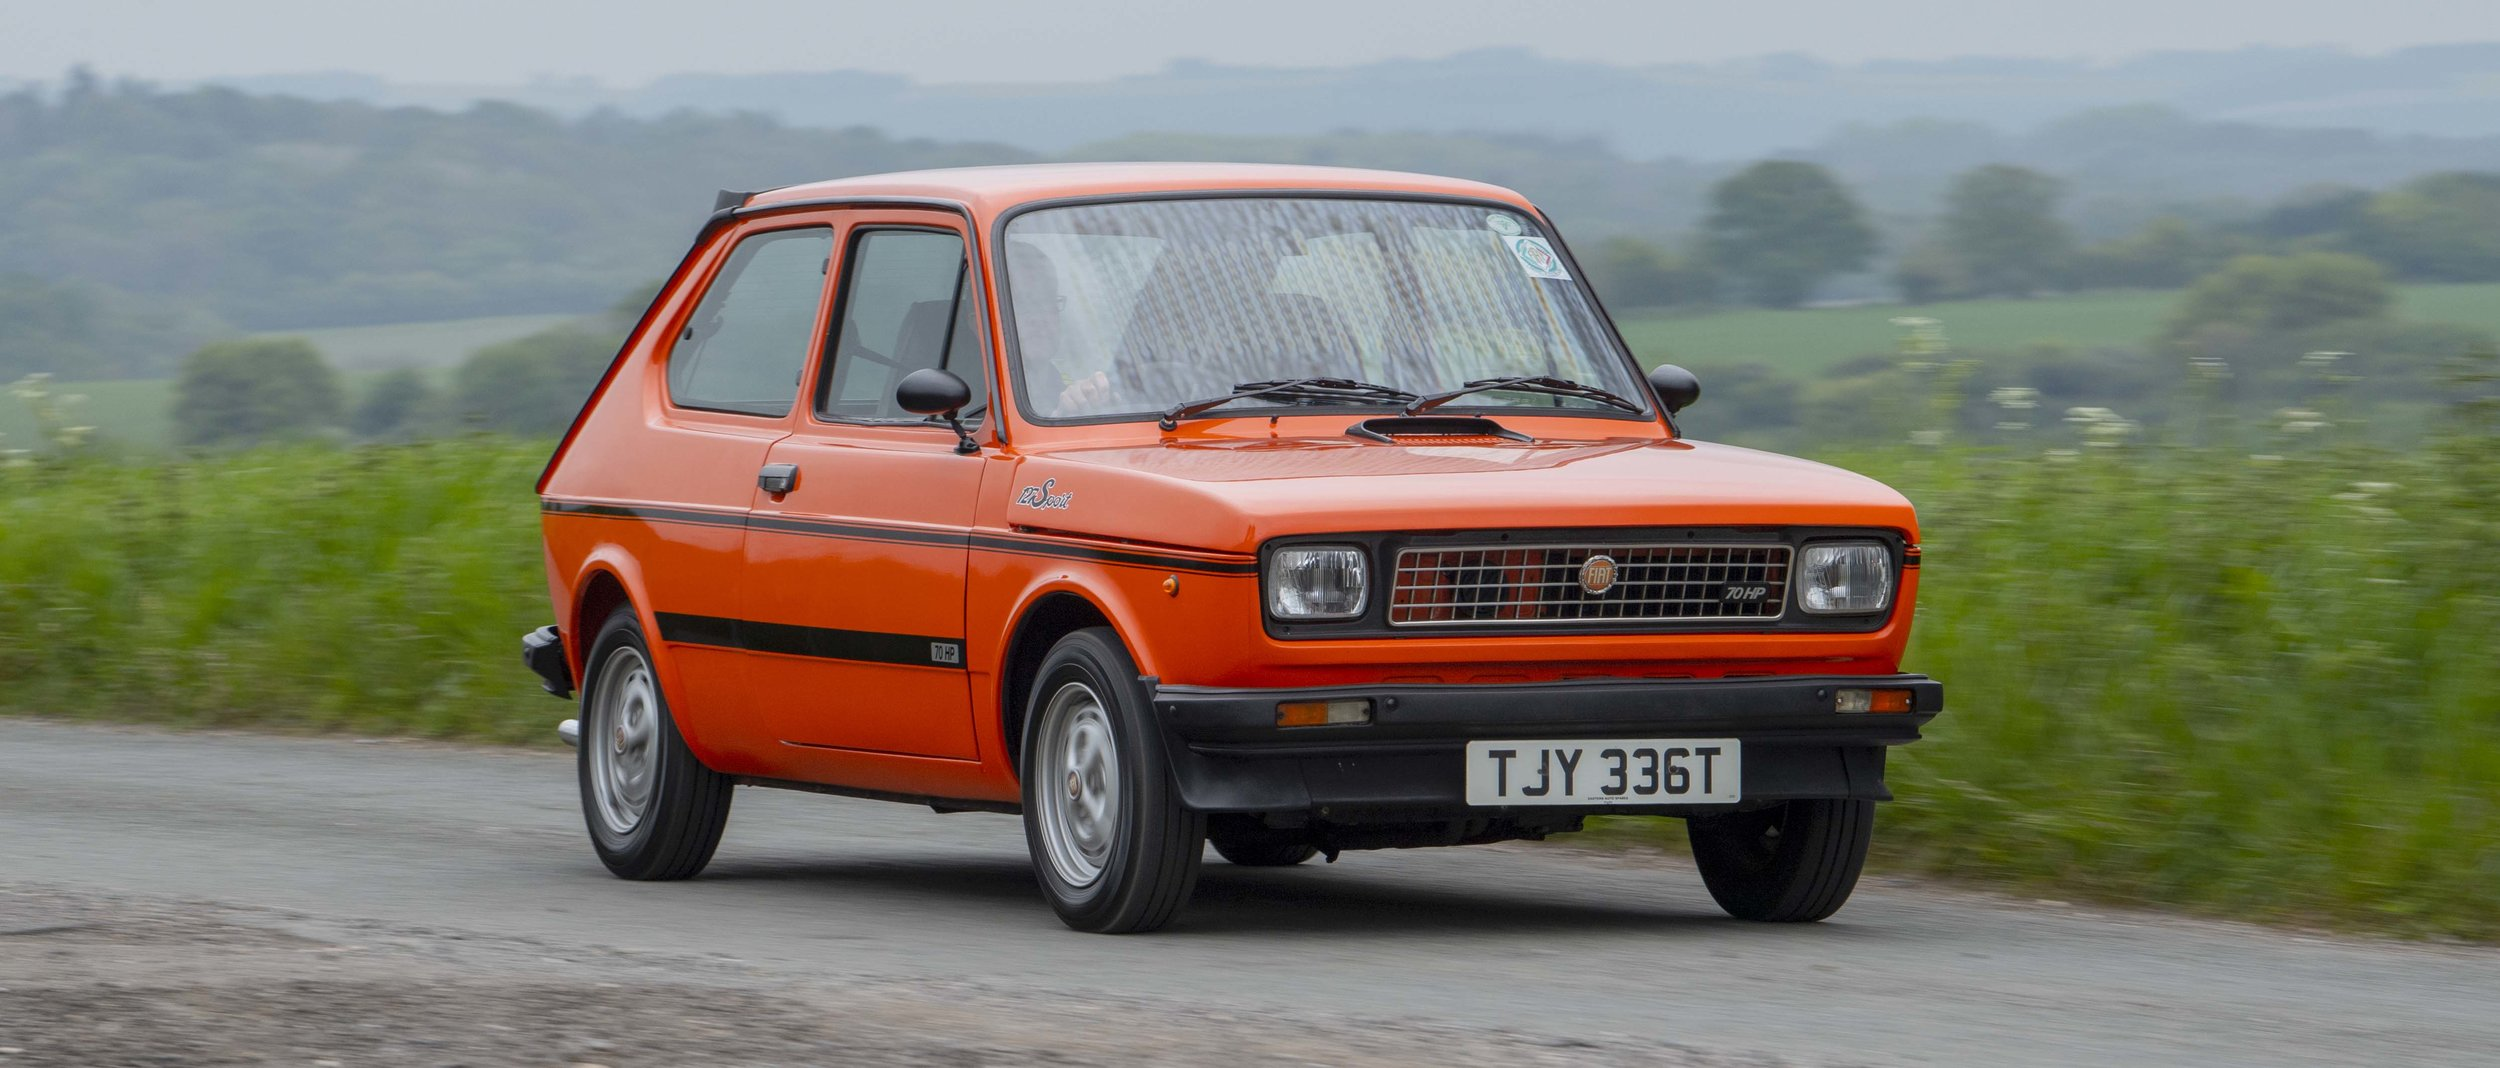 In 2018, Nigel Ford was watching a YouTube video that featured a couple of black Fiat 127s in the background. He got in touch with the guy who'd made it and was invited over to look at his orange Sport. It had been rebuilt and resprayed about ten years before but there was rust where it had been left unused and most of the wiring was unattached. It ran – barely - but was misfiring and stalling. The owner wanted £4000 for it and Nigel could see £1500 of work ahead of him. But he particularly wanted this car because it's a genuine Sport, which means it has various special parts including larger front brake discs, a stiffer and thicker anti-roll bar, wider wheels, re-profiled camshaft, bigger valves with increased compression ratio, Abarth twin exhaust and spoilers front and rear. The things we do for love…